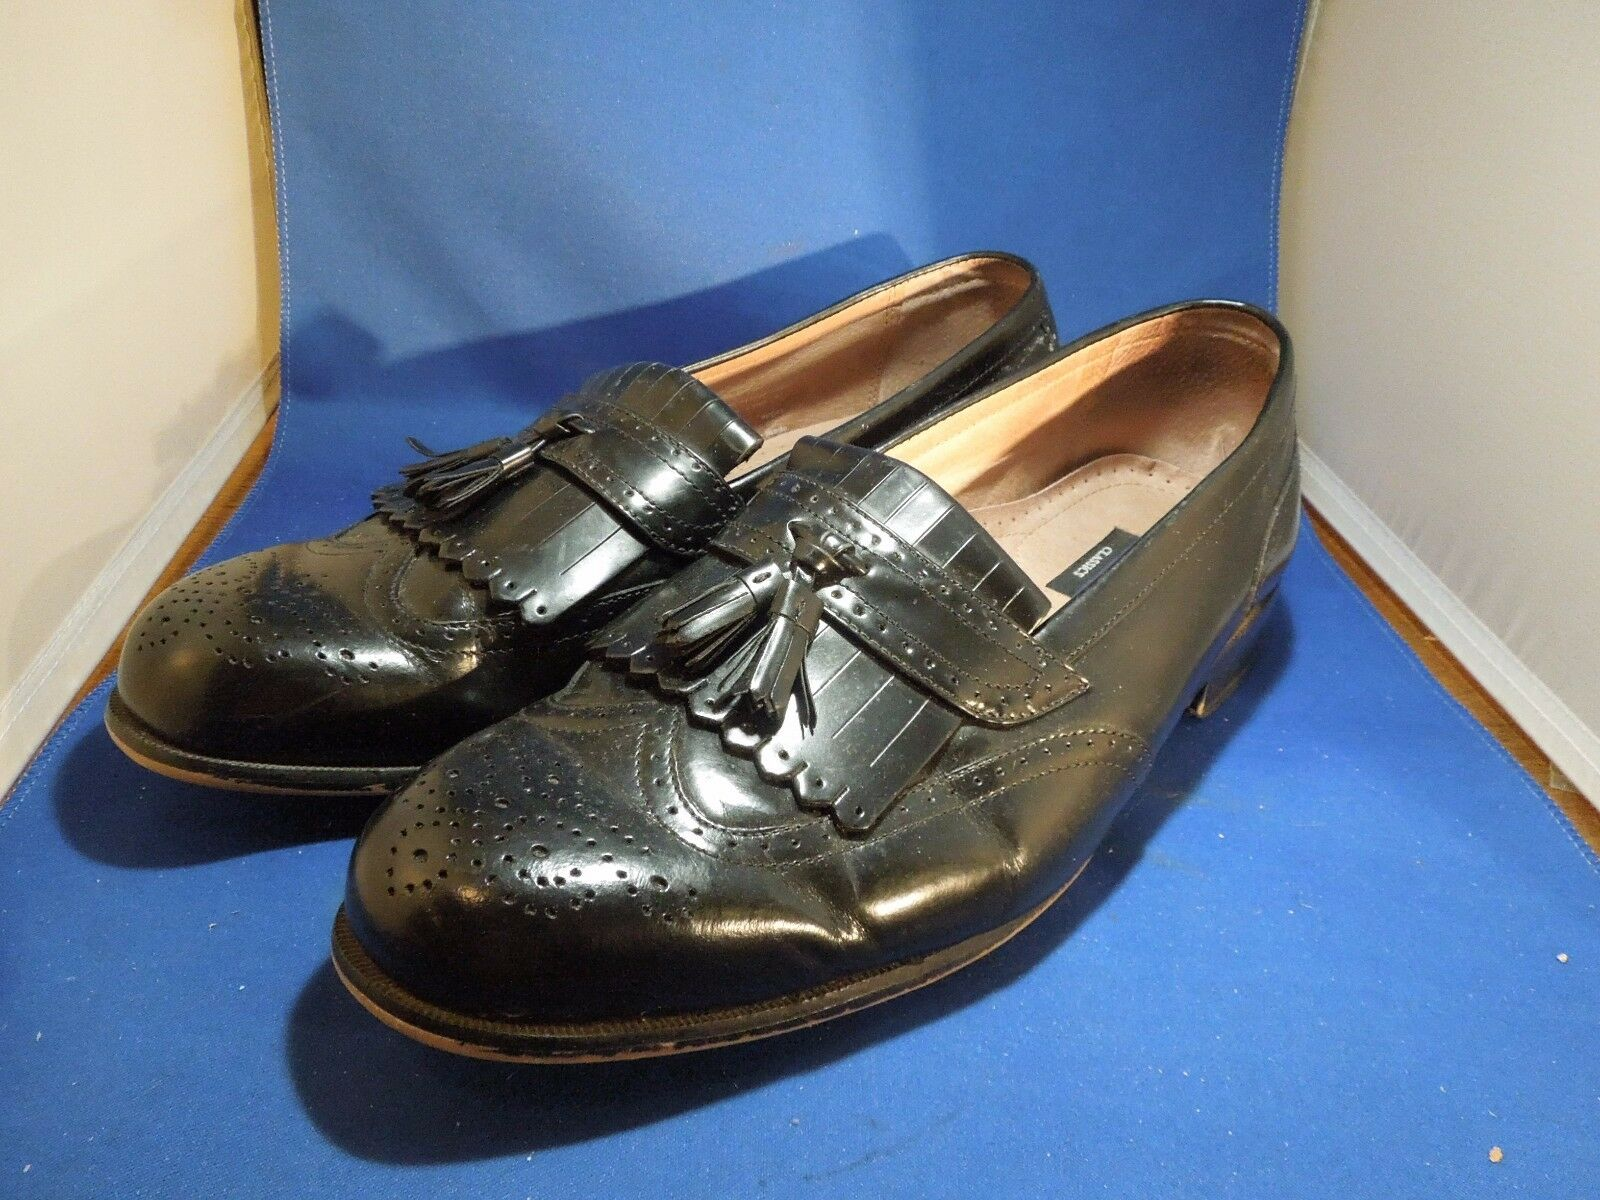 Vintage Bostonian Classics First Flex Men's shoes Size 11 1 2 M Tassel Loafers